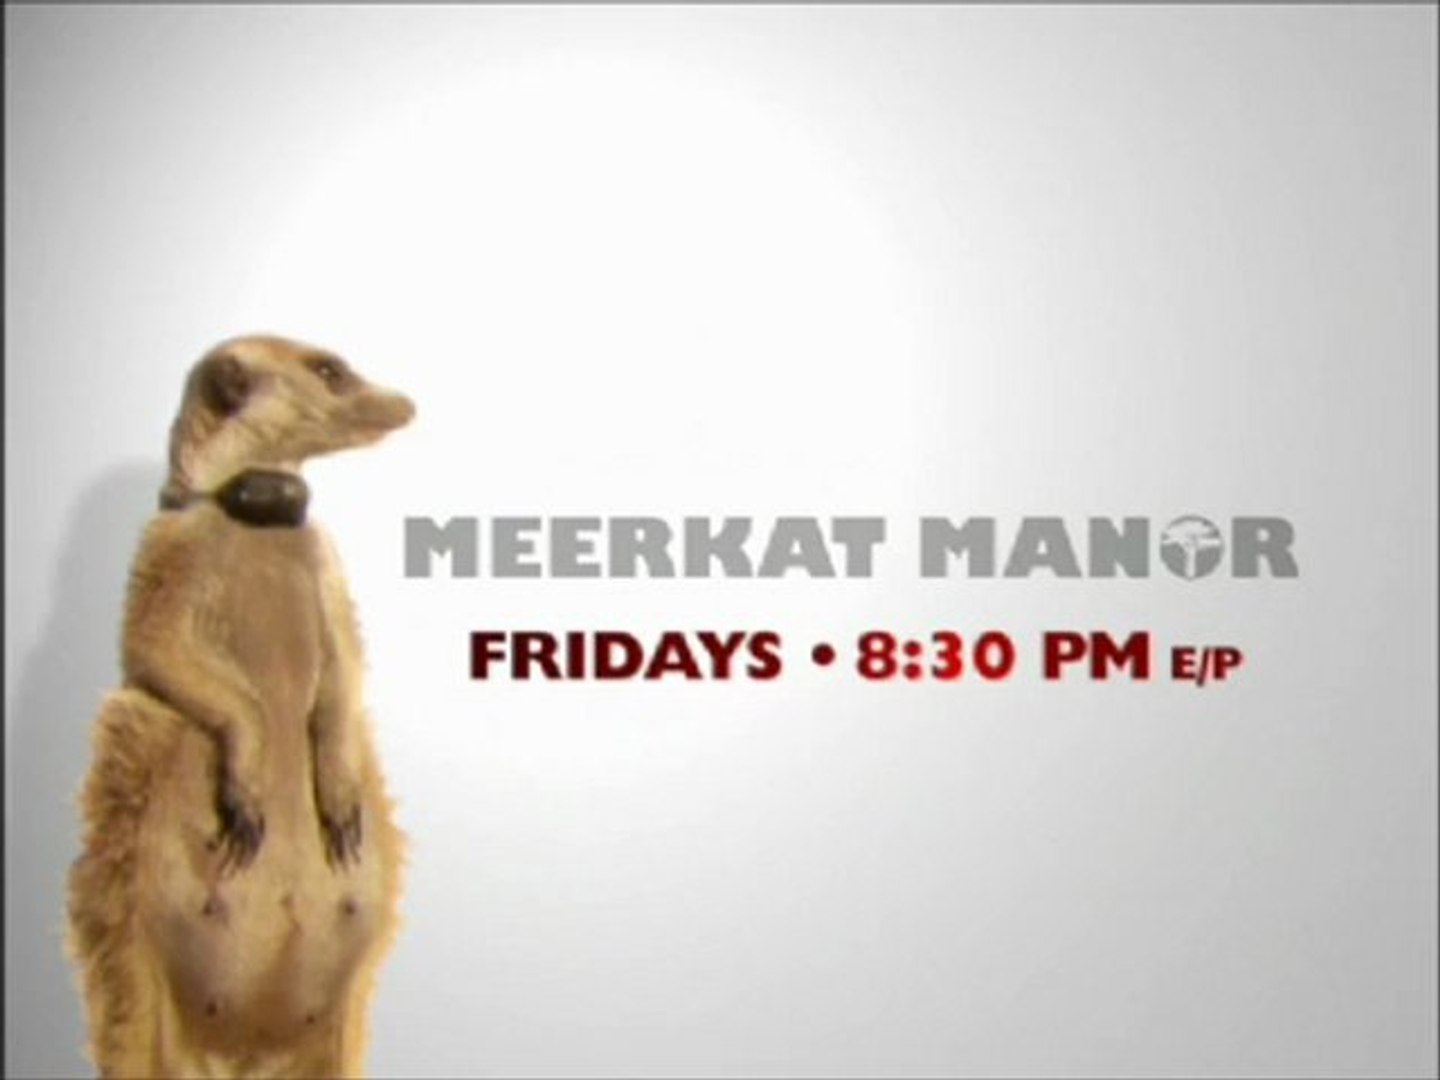 Animal Planet - Meerkat Manor Promos (2006)